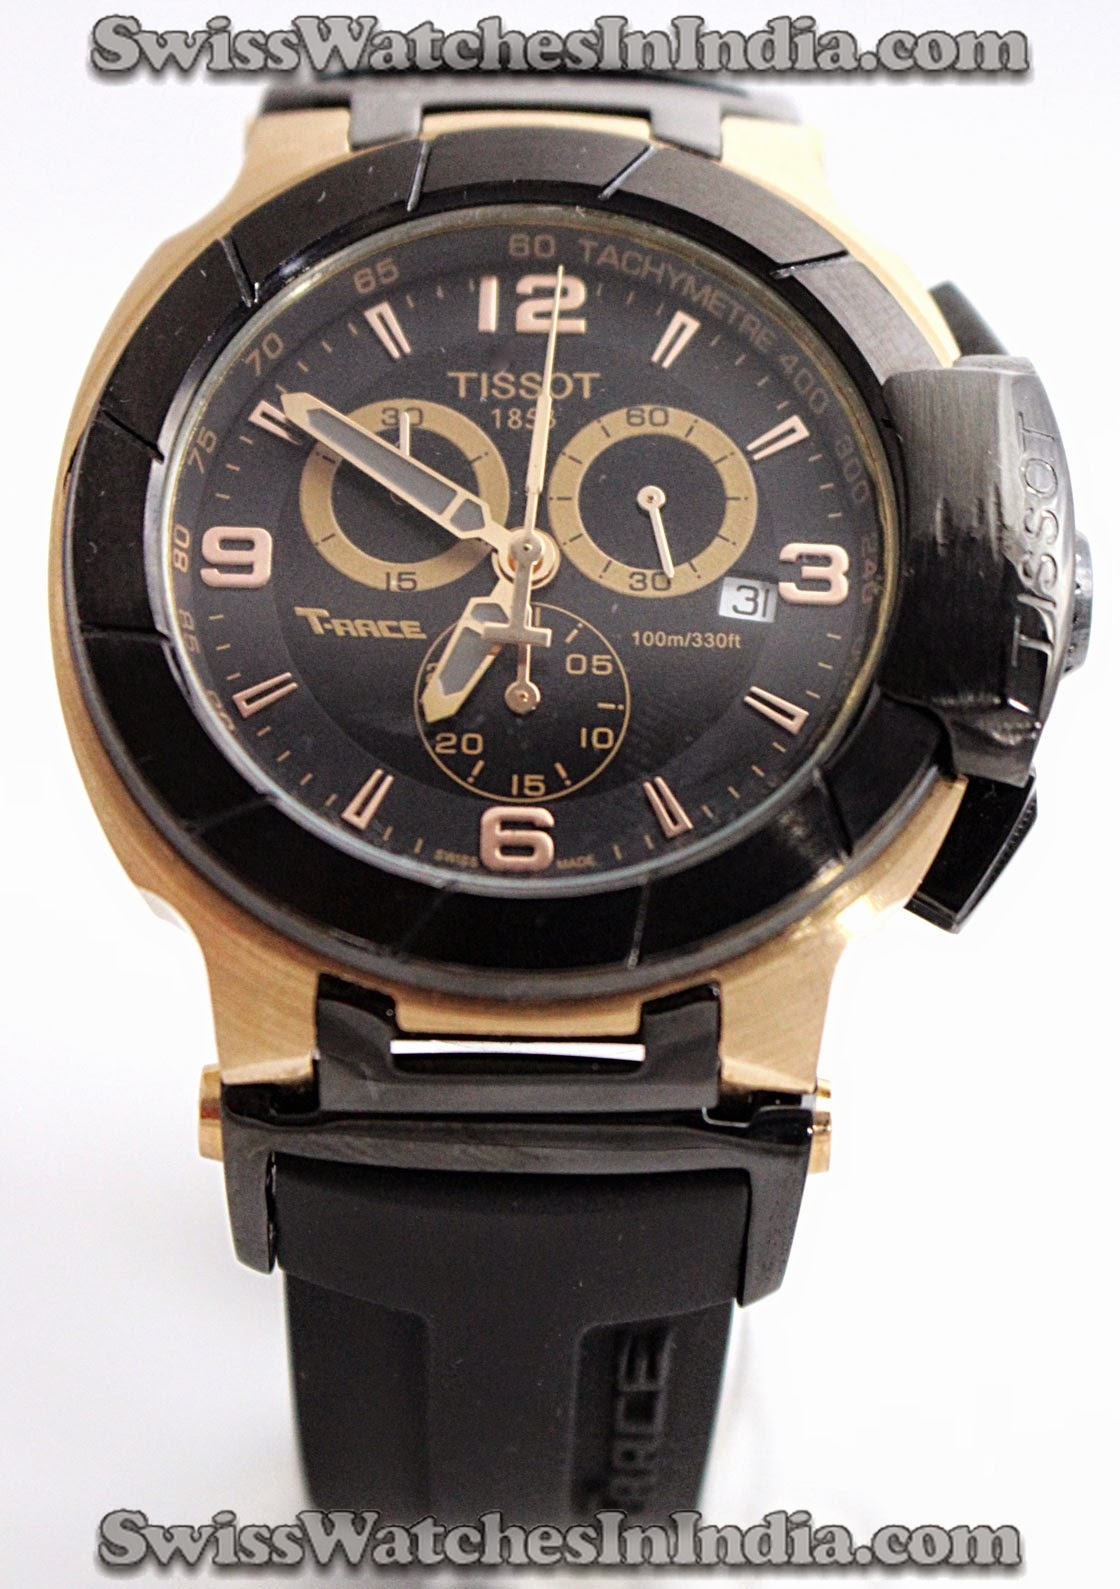 replica first copy watches first copy watches online india tag heuer rado rolex omega. Black Bedroom Furniture Sets. Home Design Ideas